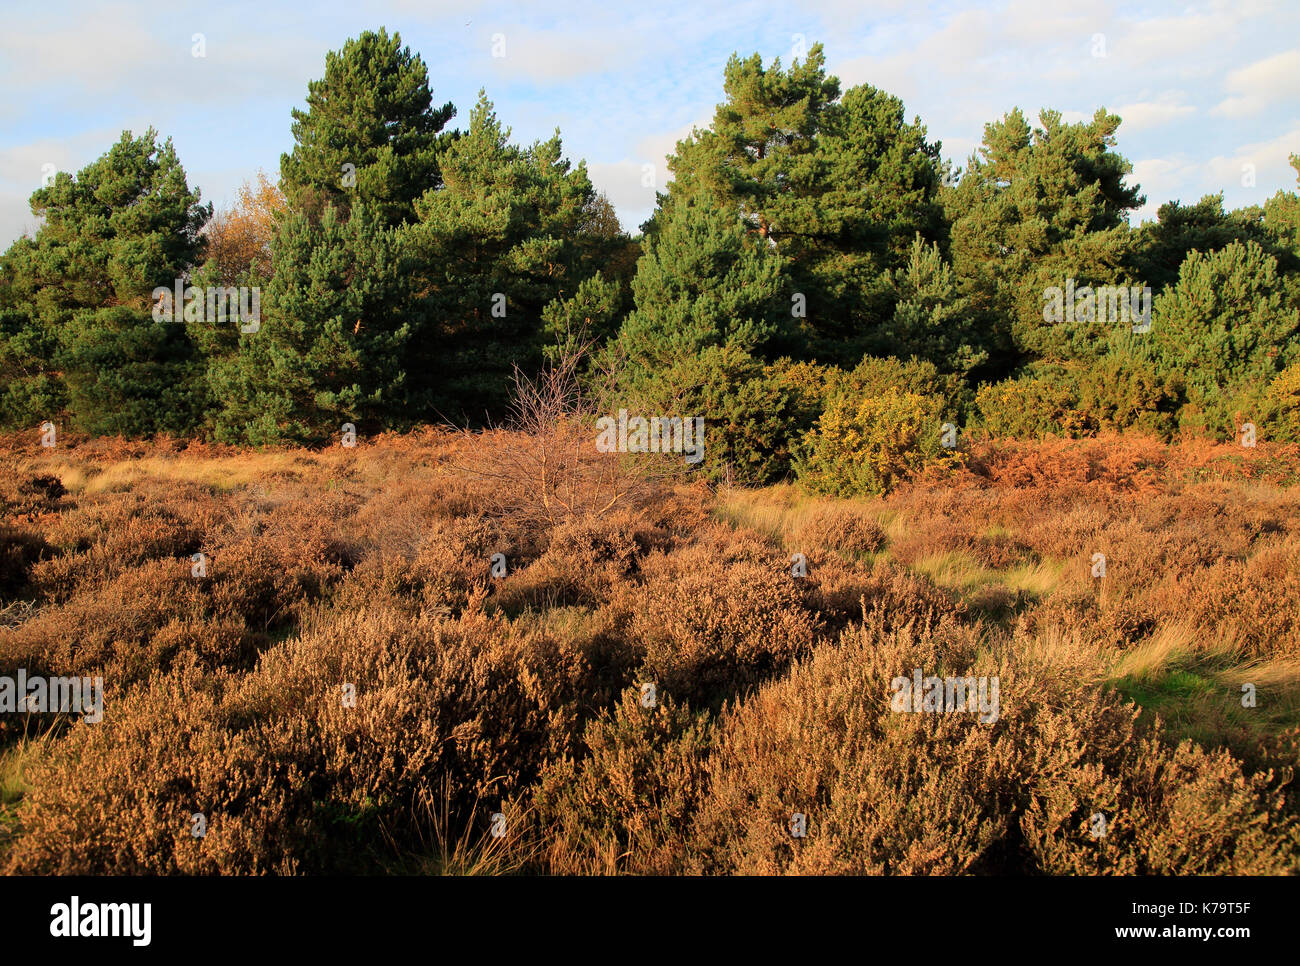 Coniferous trees and heather plants Sandlings heathland, Sutton Heath Suffolk, England, UK - Stock Image